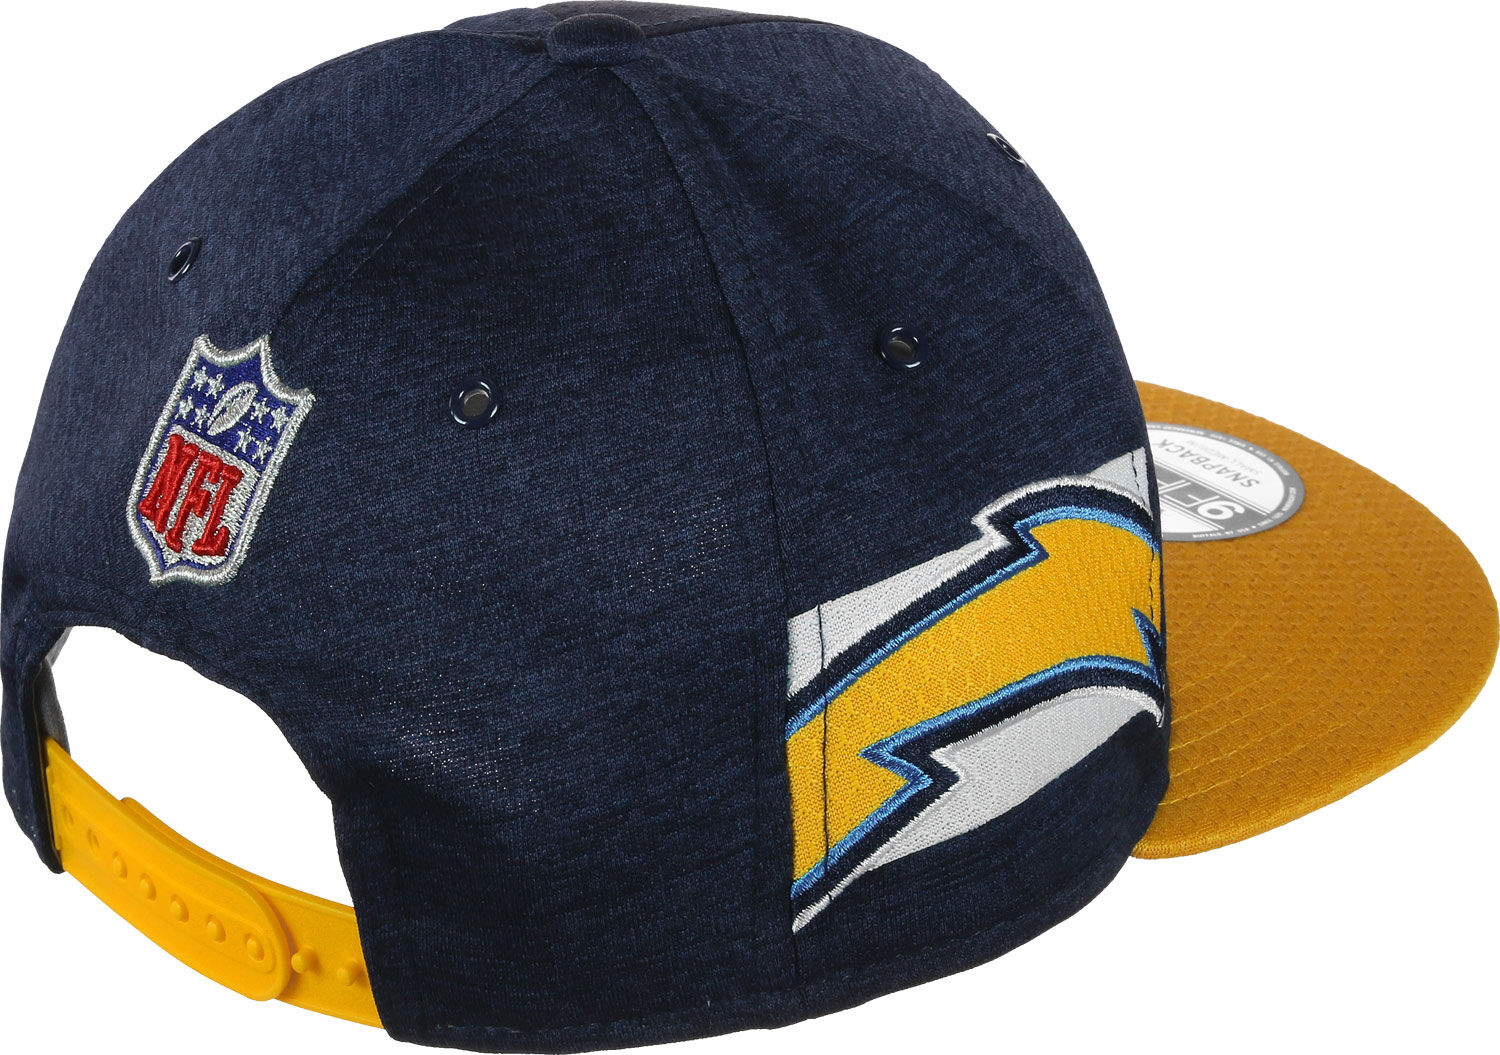 NFL Sideline 9fifty Los Chargers